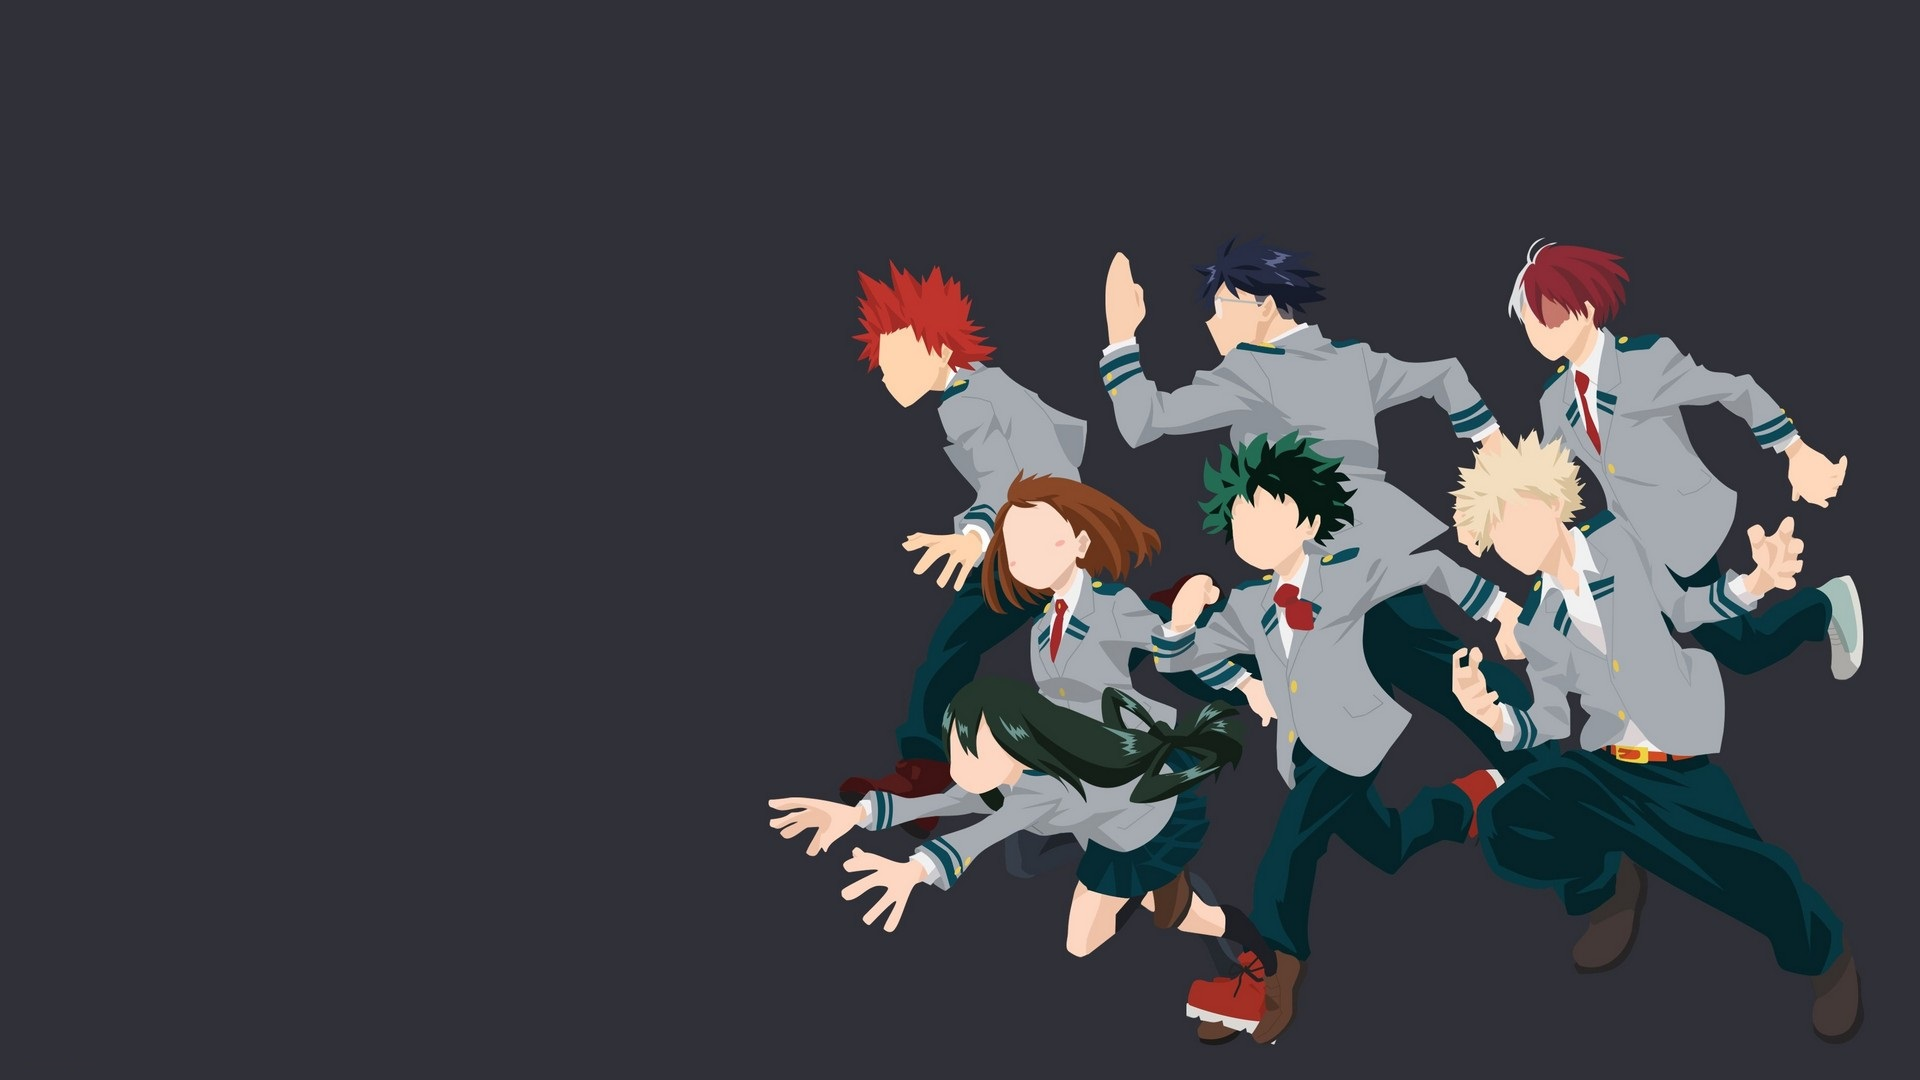 Wallpapers in ultra hd 4k 3840x2160, 1920x1080 high definition resolutions. My Hero Academia Desktop Backgrounds HD | 2021 Cute Wallpapers